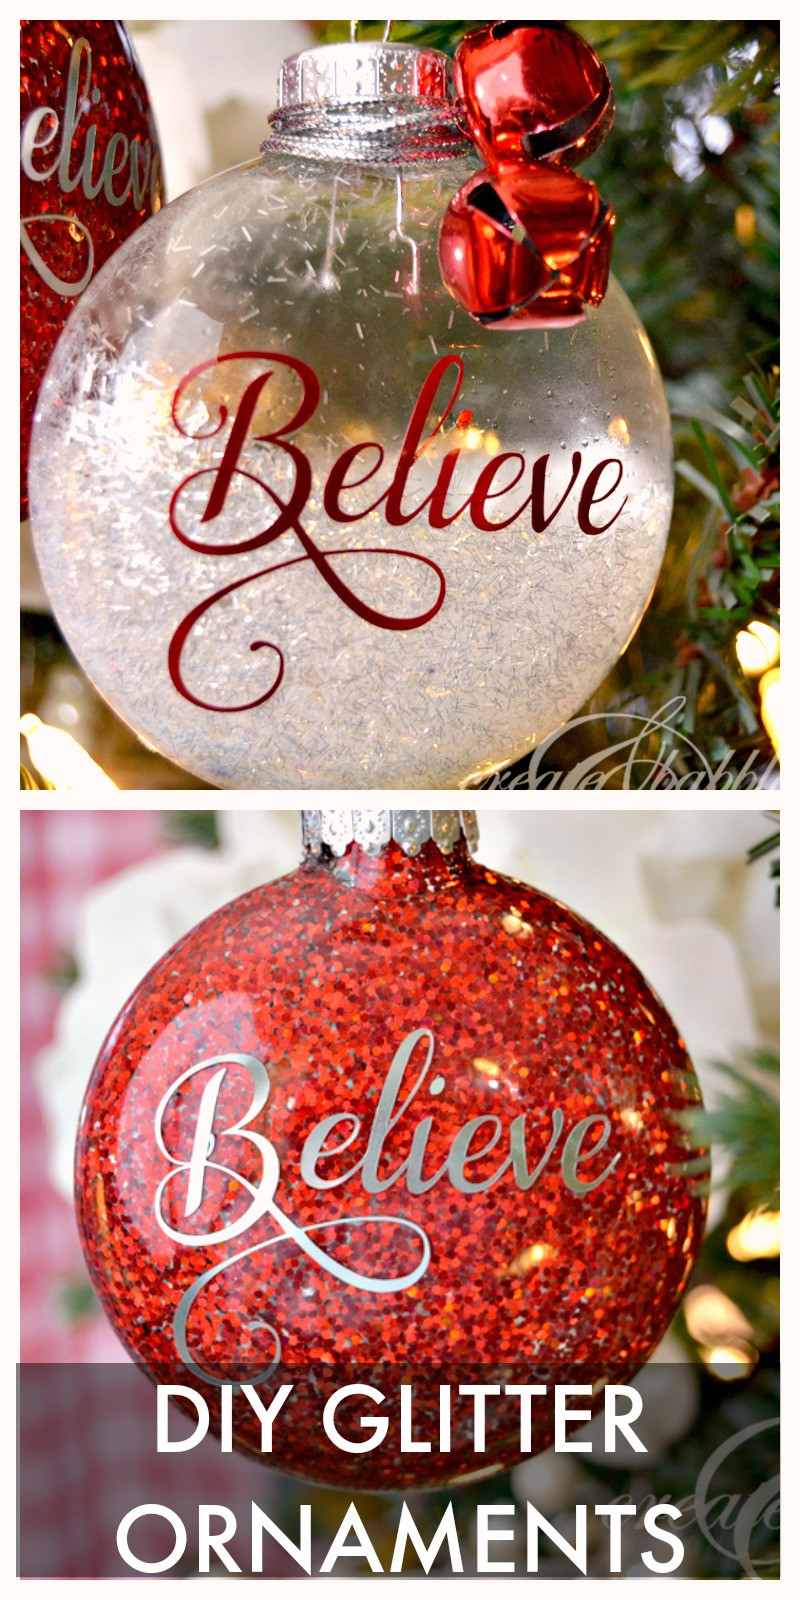 Best ideas about DIY Christmas Ornament . Save or Pin 30 Christmas Tree Ornaments to Make TGIF This Grandma Now.